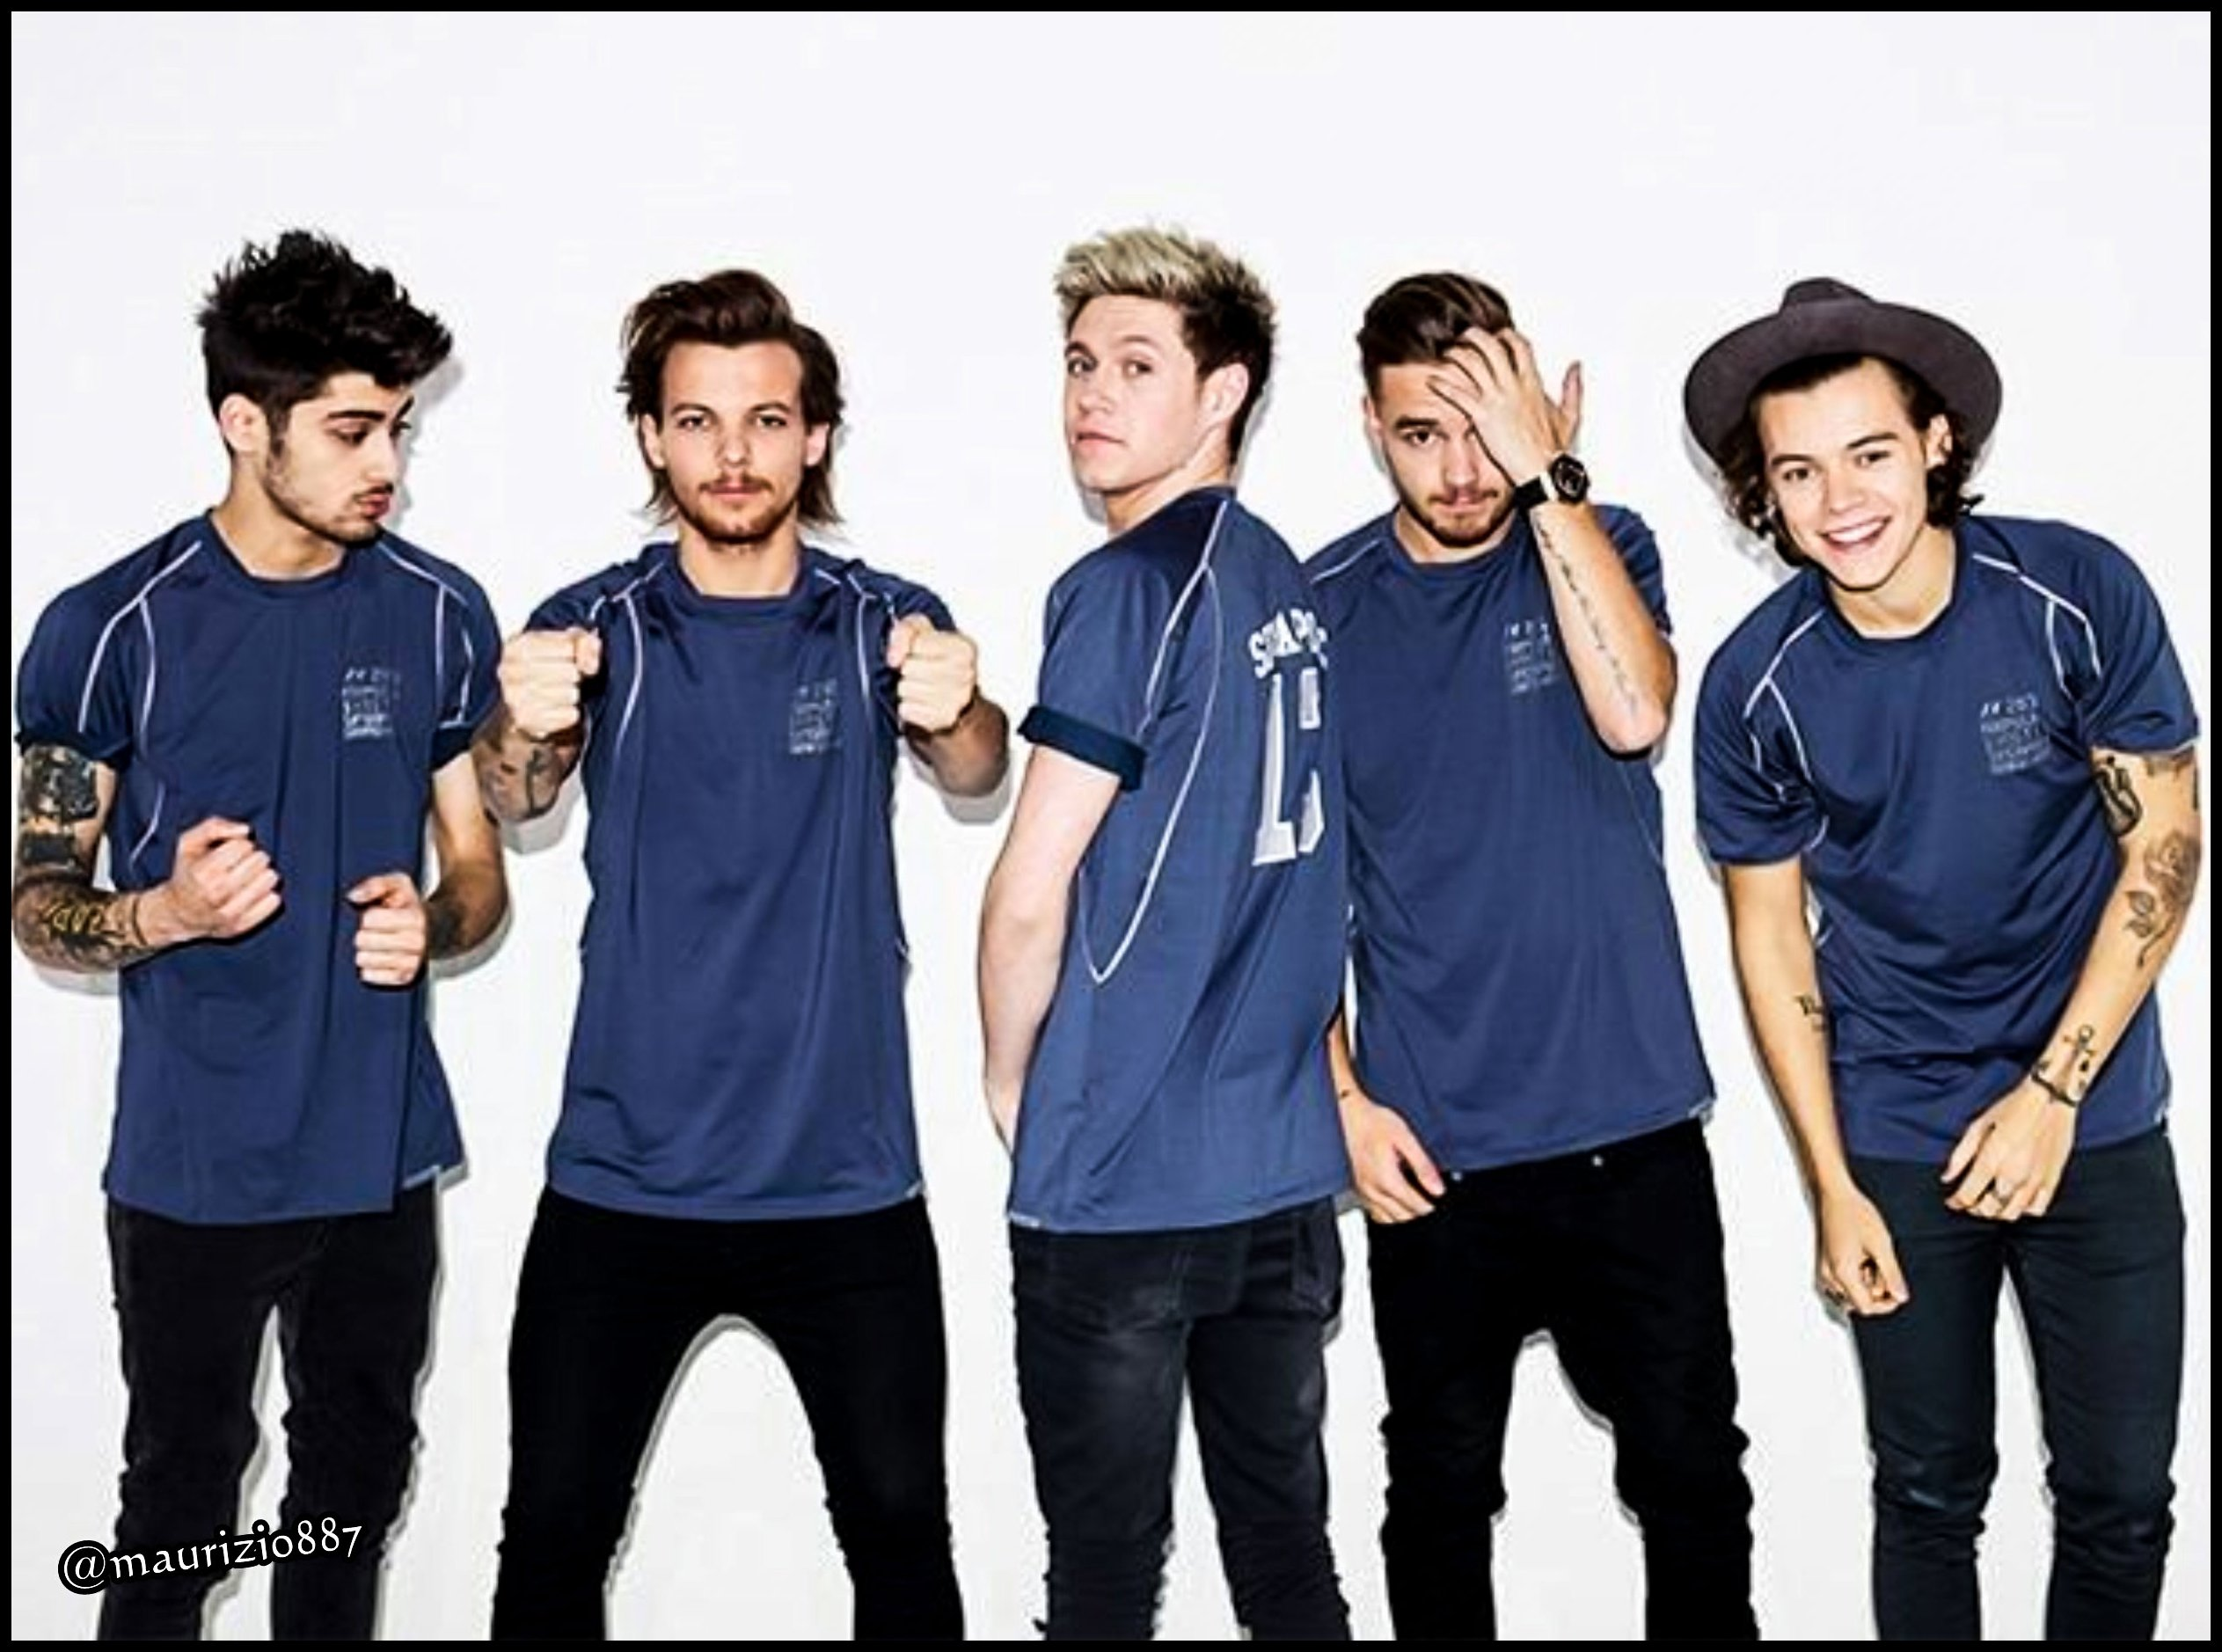 one-direction-photoshoot-2014-one-direction-37098126-2526-1878 jpgOne Direction Photoshoot 2014